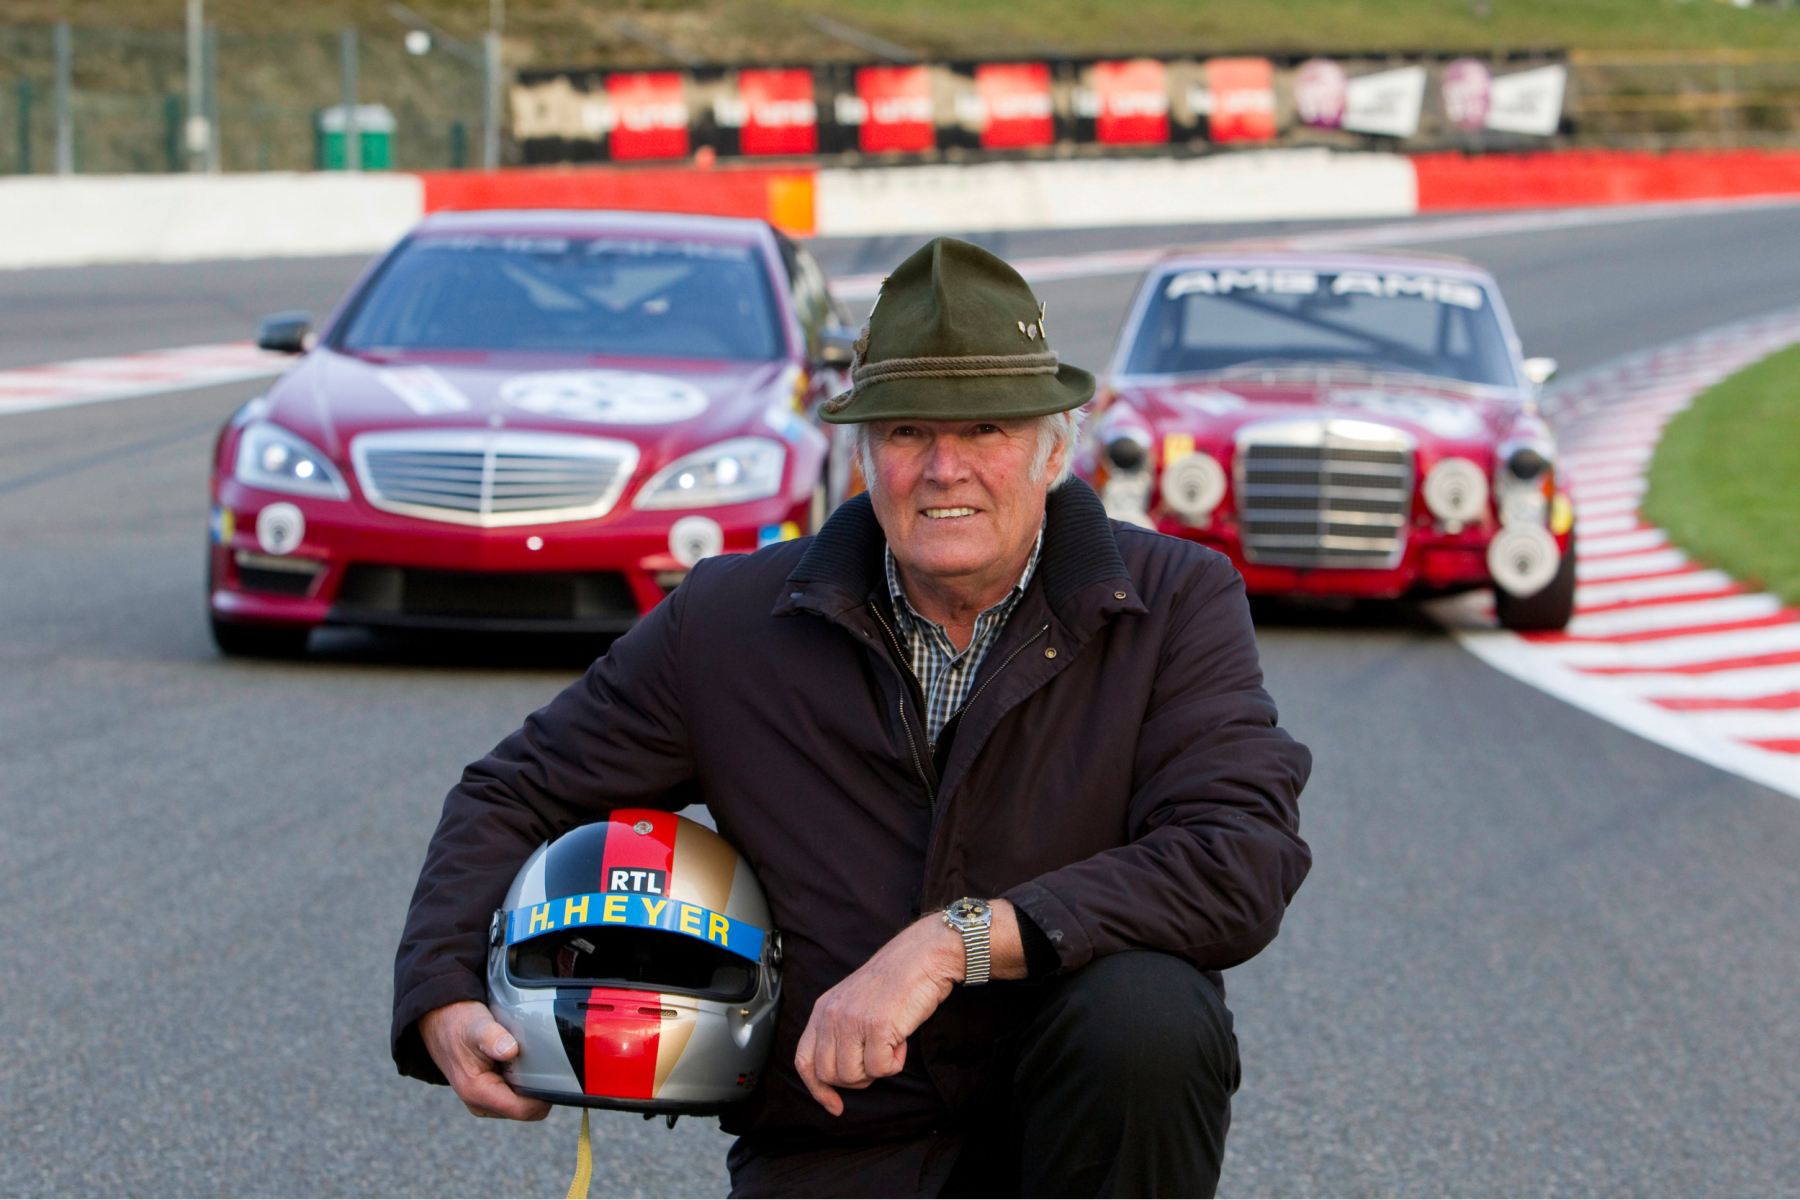 """Hans Heyer, one of the drivers of the successful AMG 300 SEL 6.8 racing touring car of 1971 in Spa-Francorchamps. In the background, to the left, the vehicle as a detailed reconstruction from 2006 (right) along with the Mercedes-Benz S 63 AMG """"Thirty-Five"""" (W 221) with a decal based on the racing touring car. Photo from 2010."""